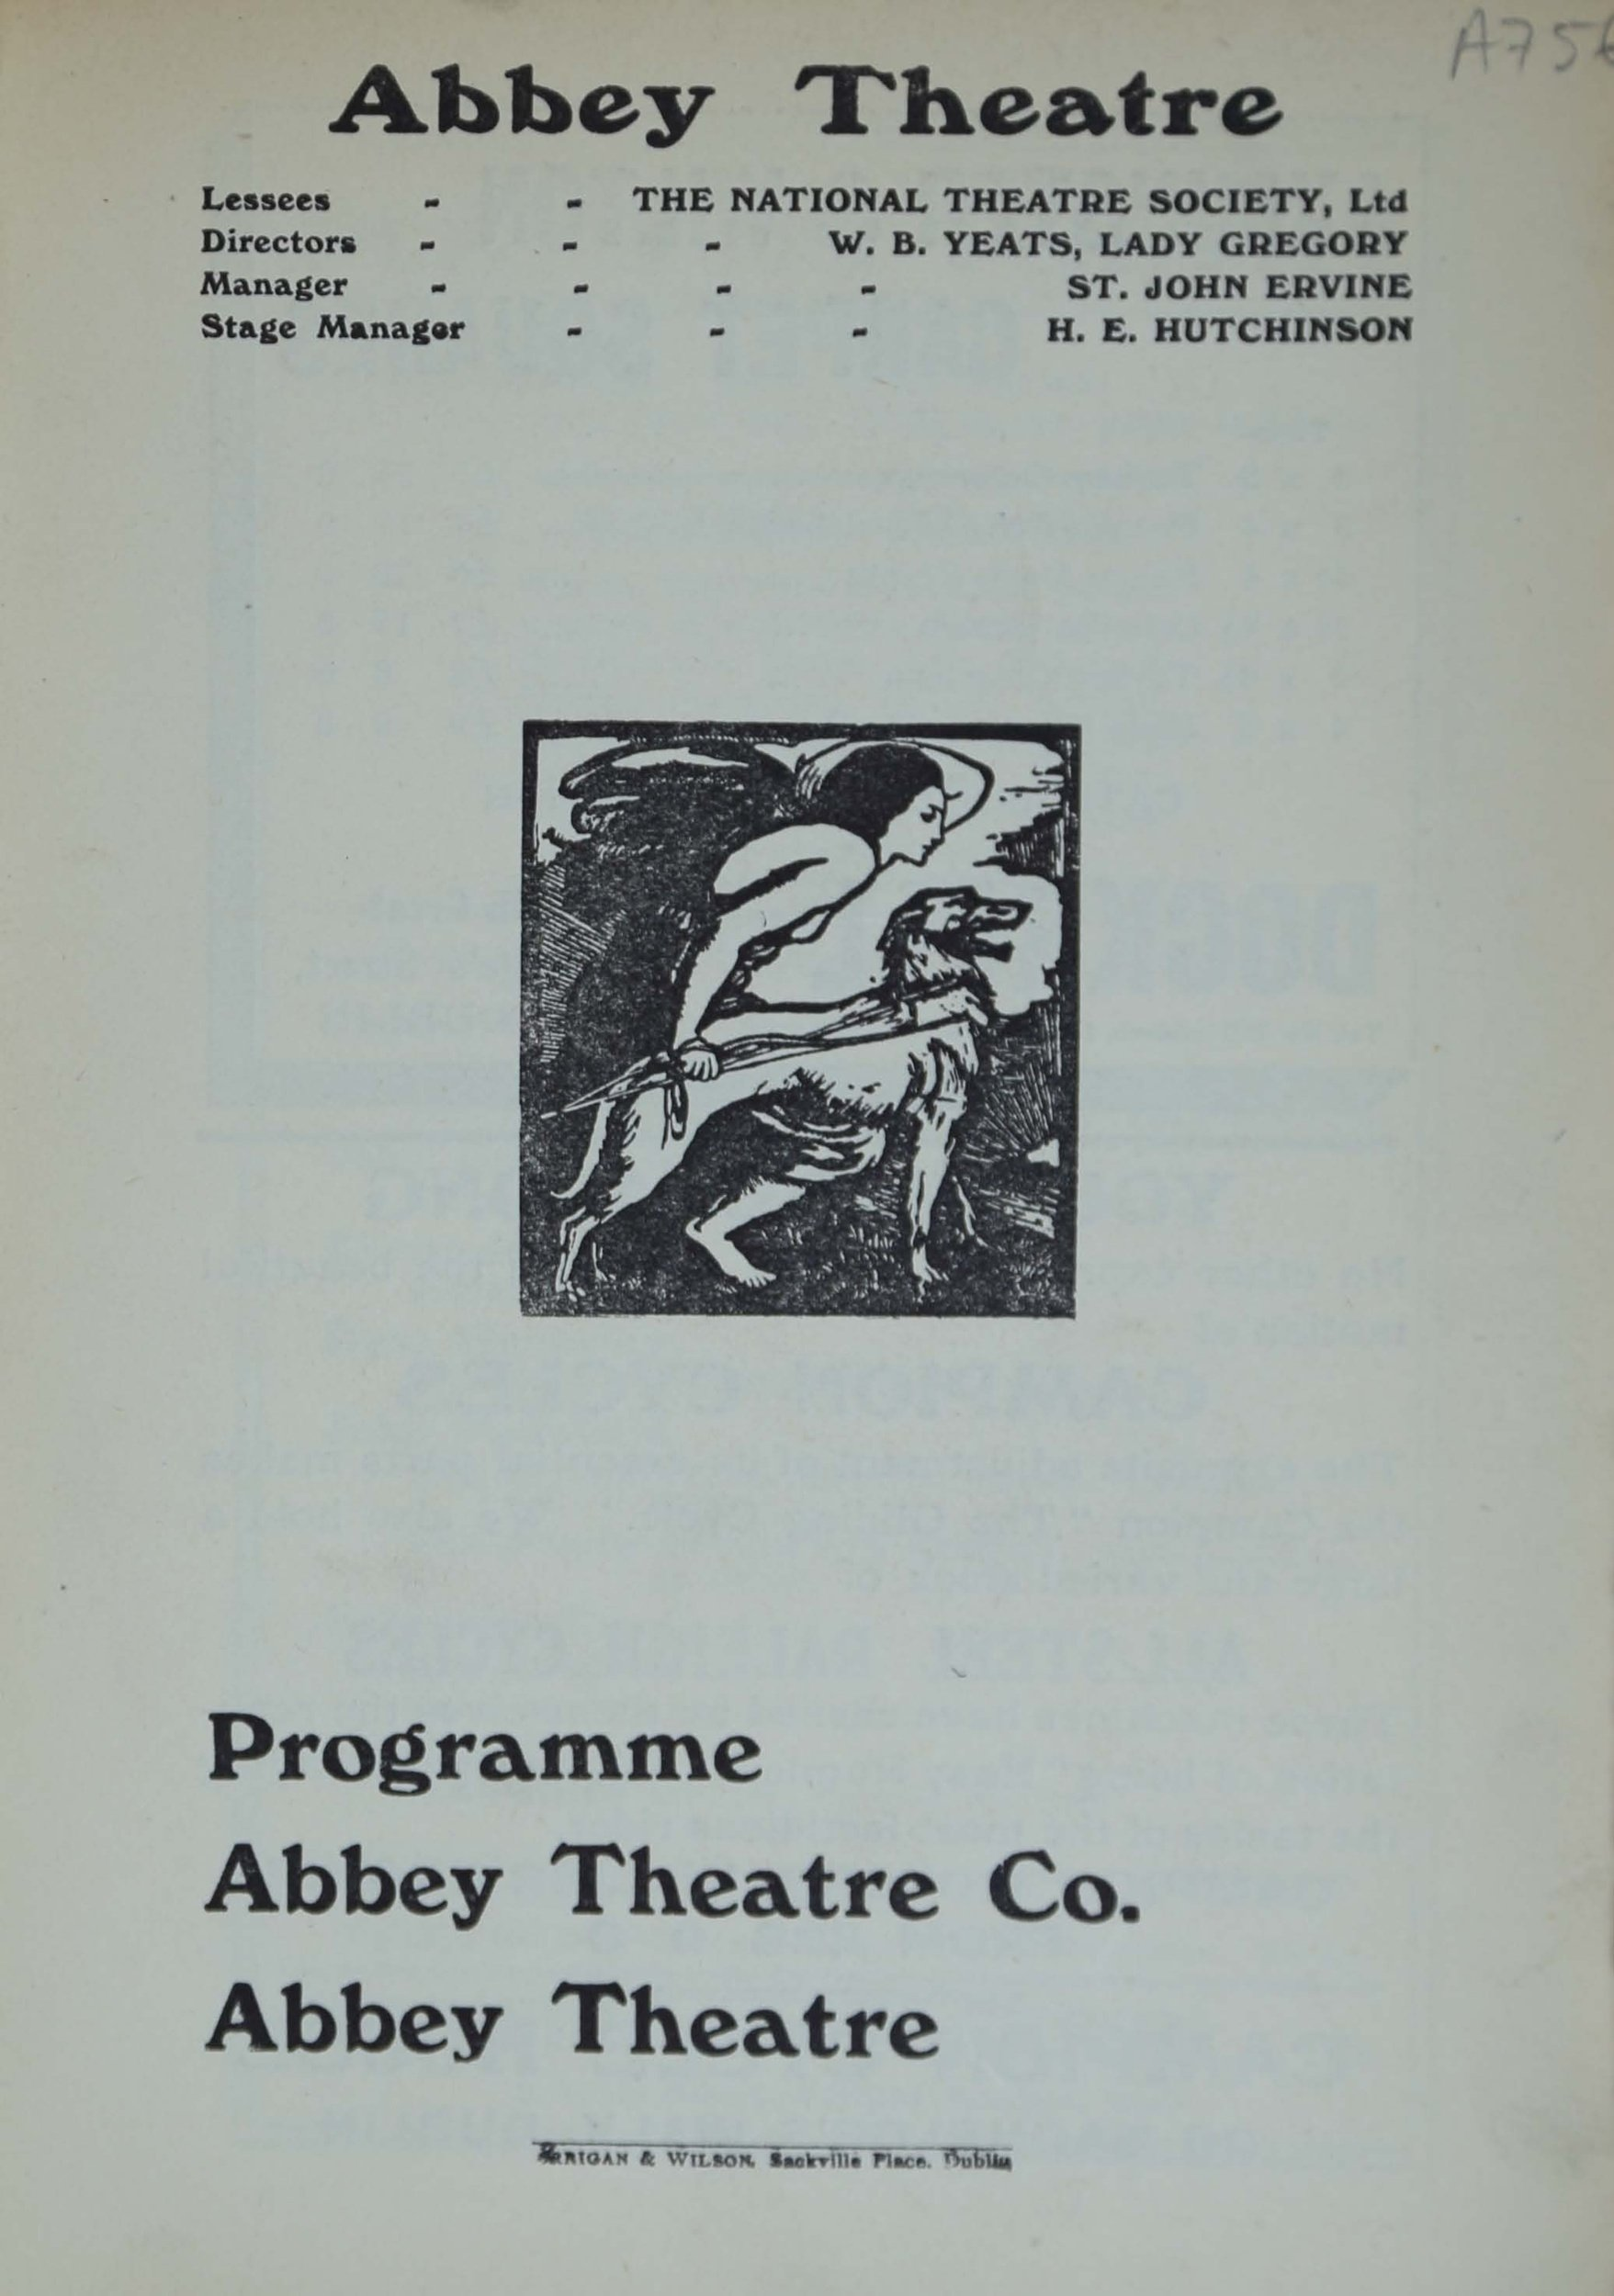 Object: Abbey Theatre programme